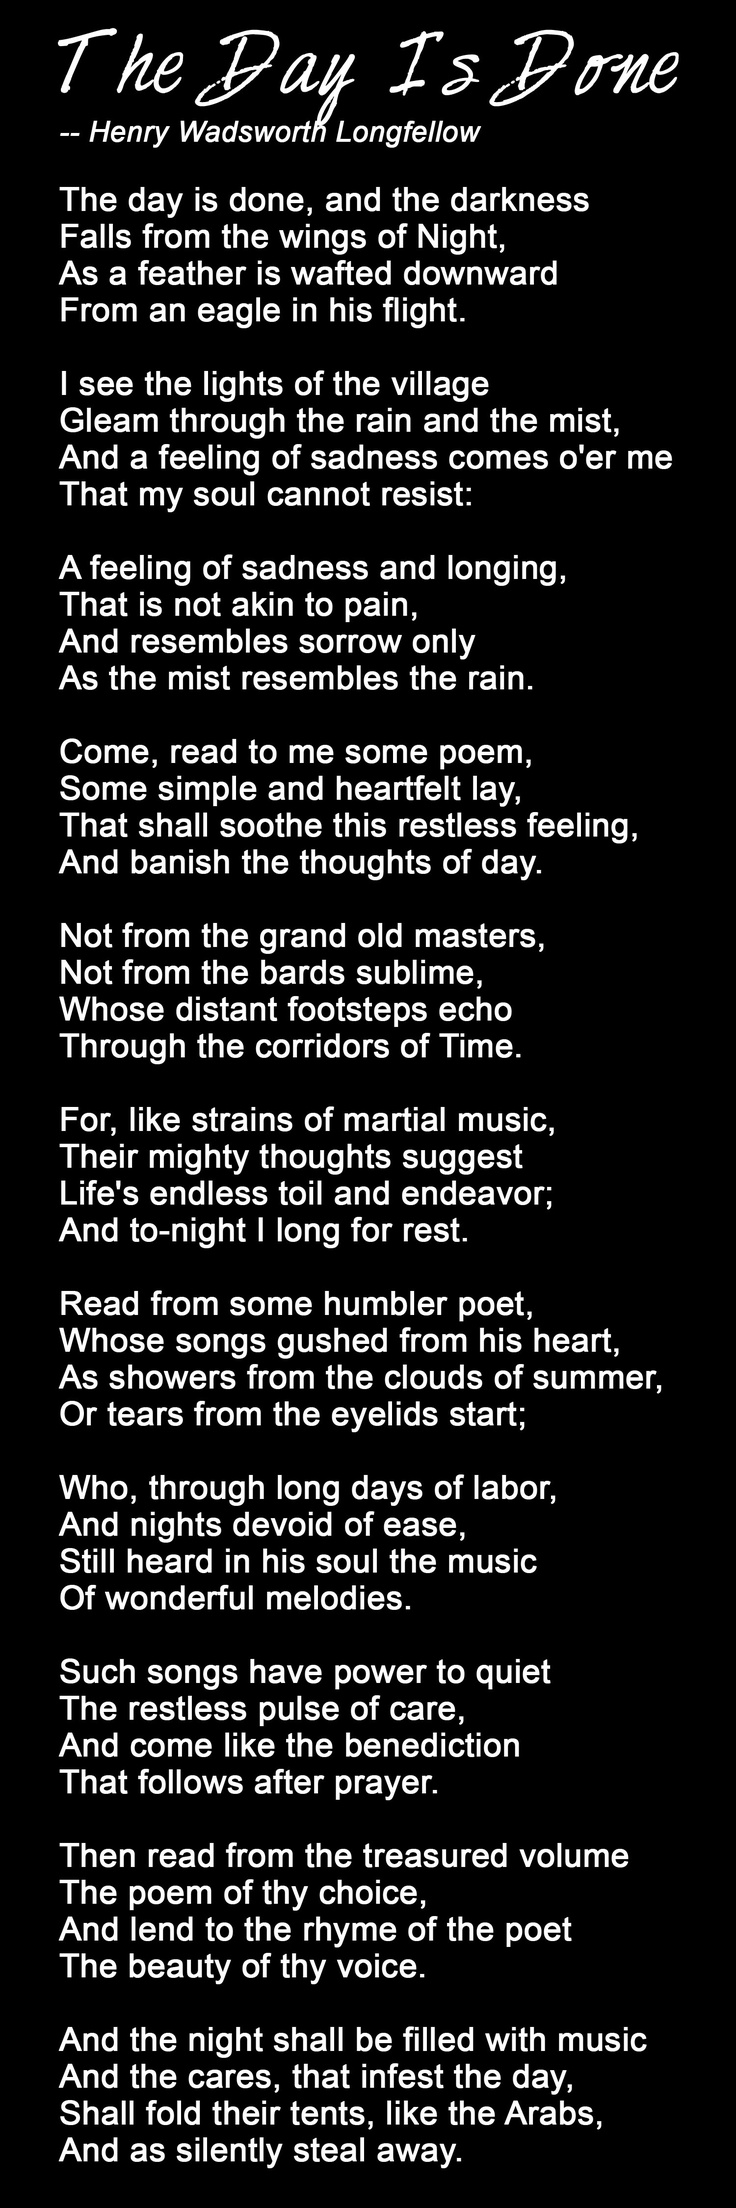 H.W. Longfellow....one of my favorite poems!